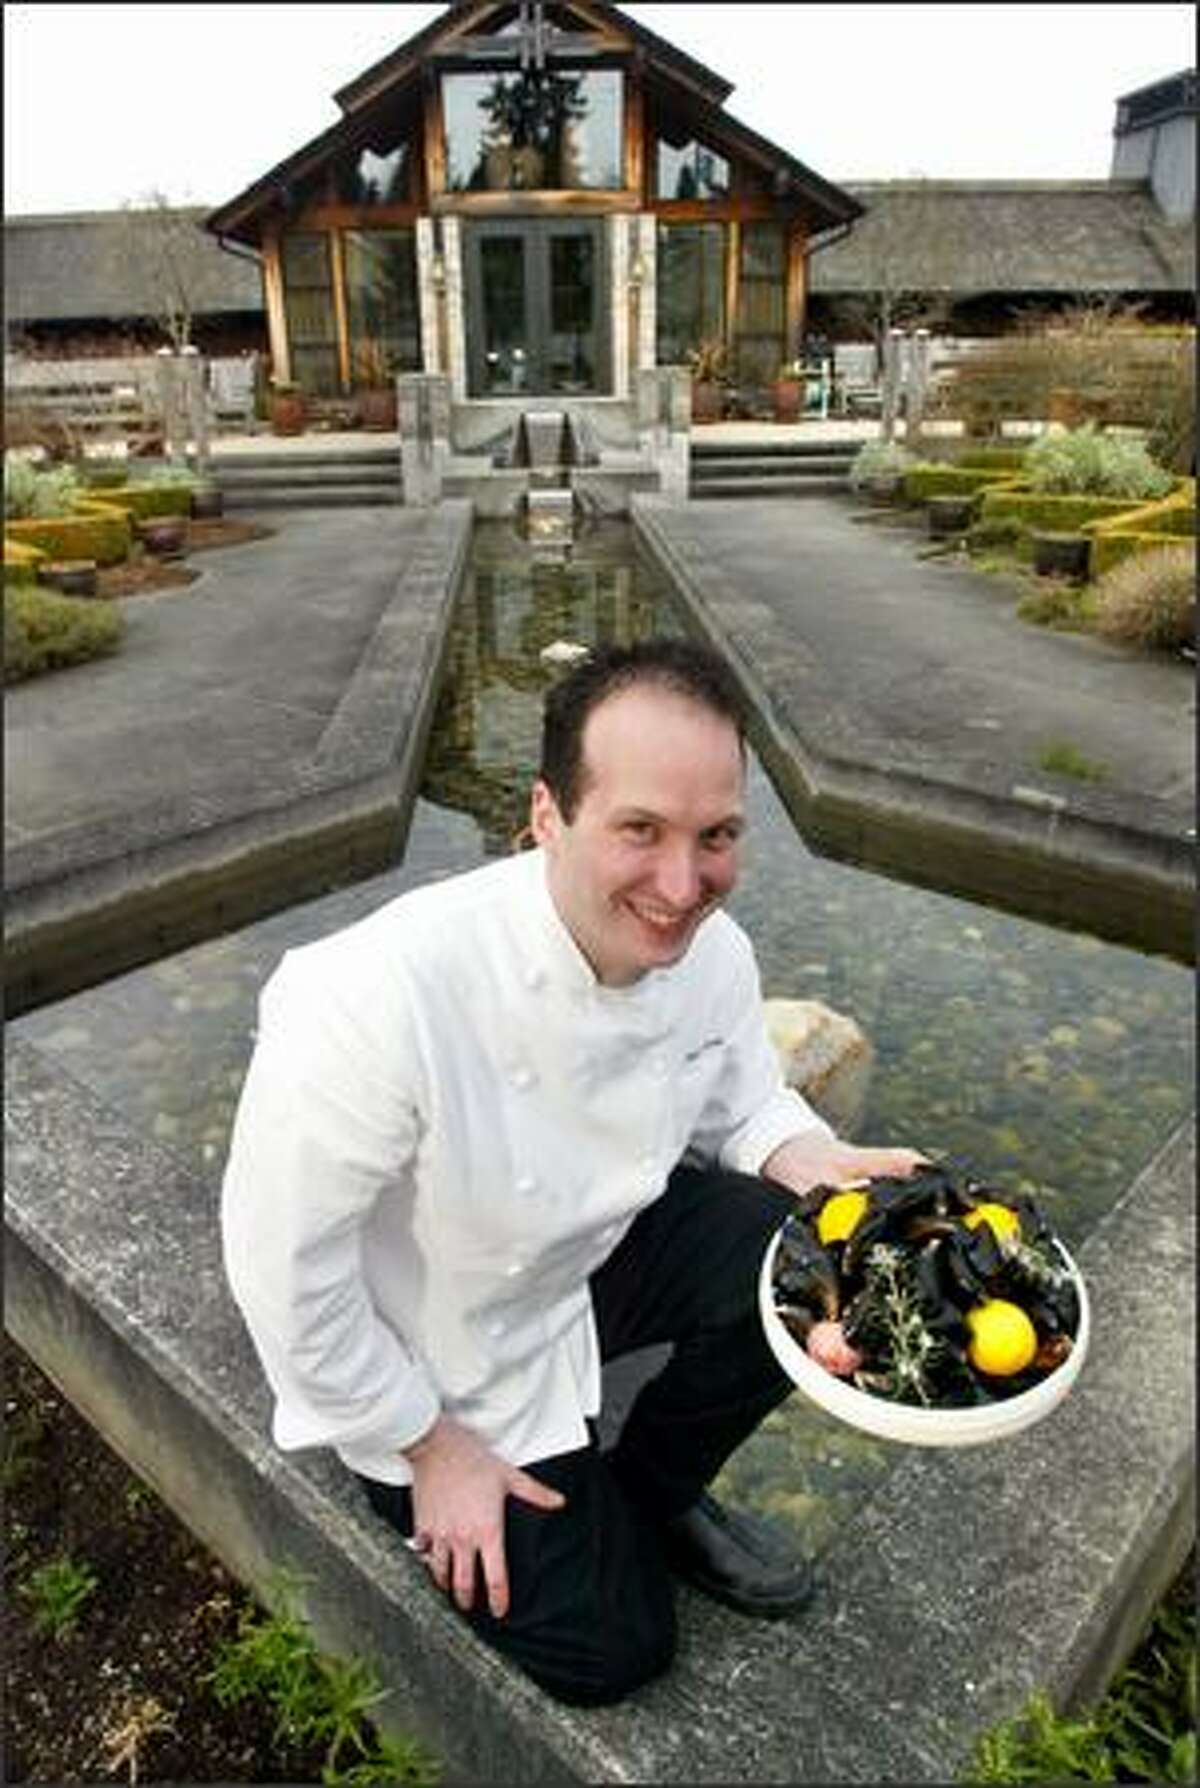 Chef and general manager at The Inn at Langley, Matt Costello emphasizes Whidbey Island agriculture in his menu, including locally harvested mussels.